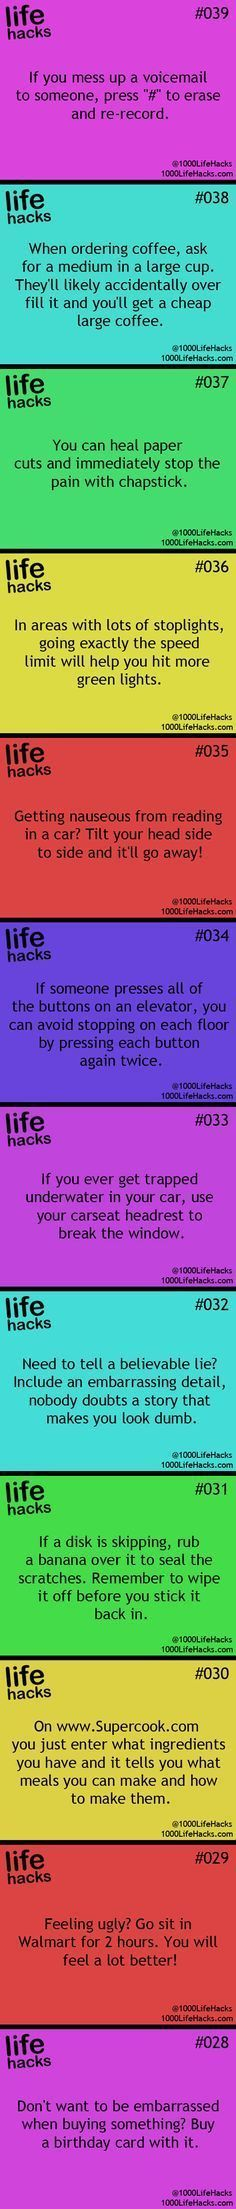 25 Useful Life Hacks… voicemail, elevator, car trapped underwater were the most useful ones